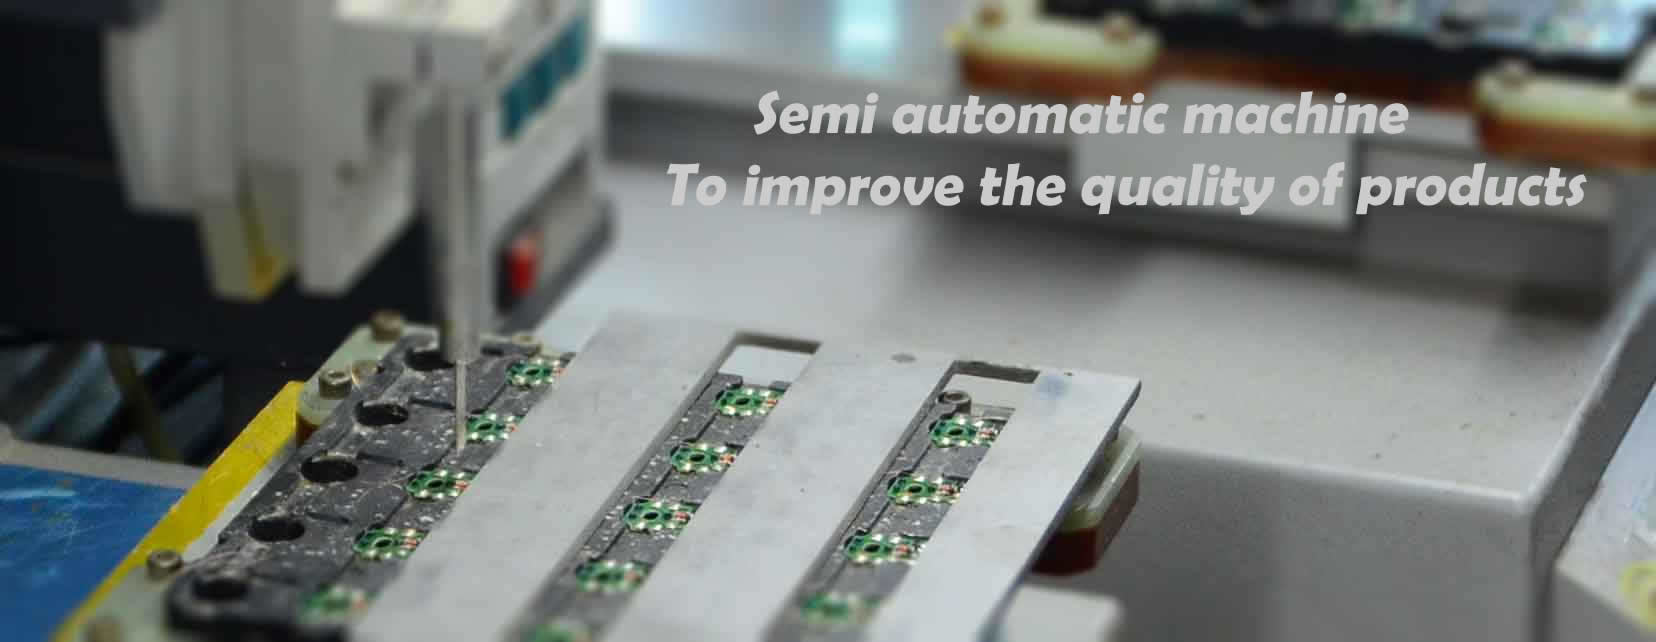 Semi automatic machine to  improve the quality of products